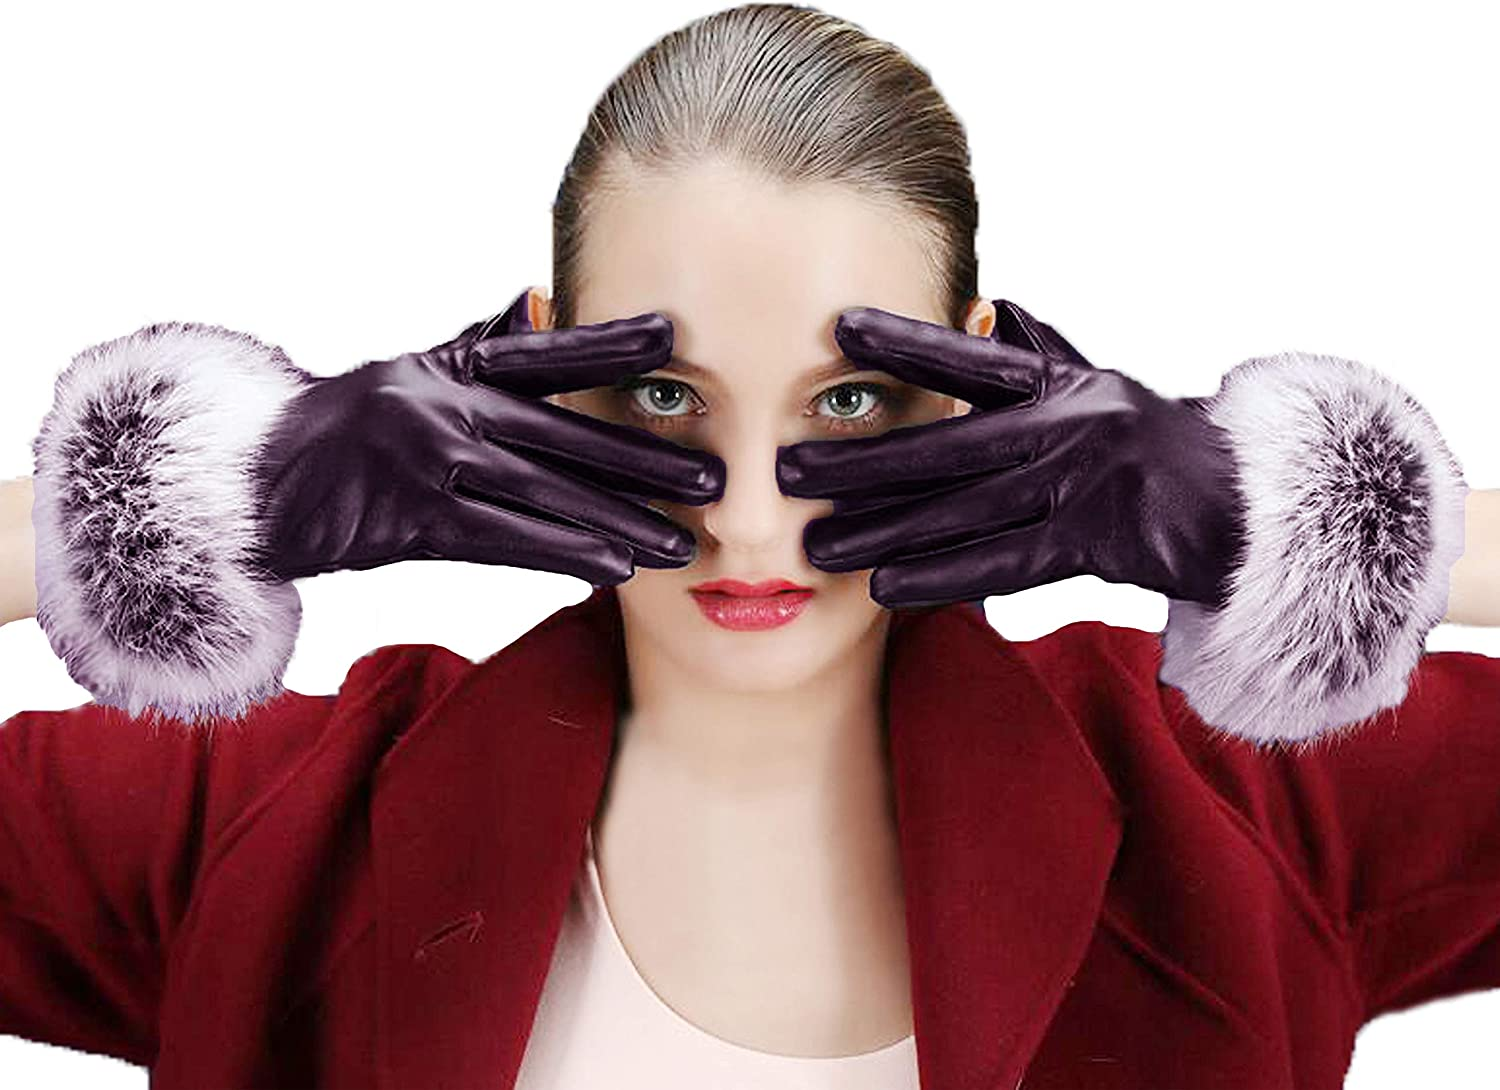 Lovful Women's Winter Faux Leather Touchscreen Texting Gloves Fur Trim Cuff